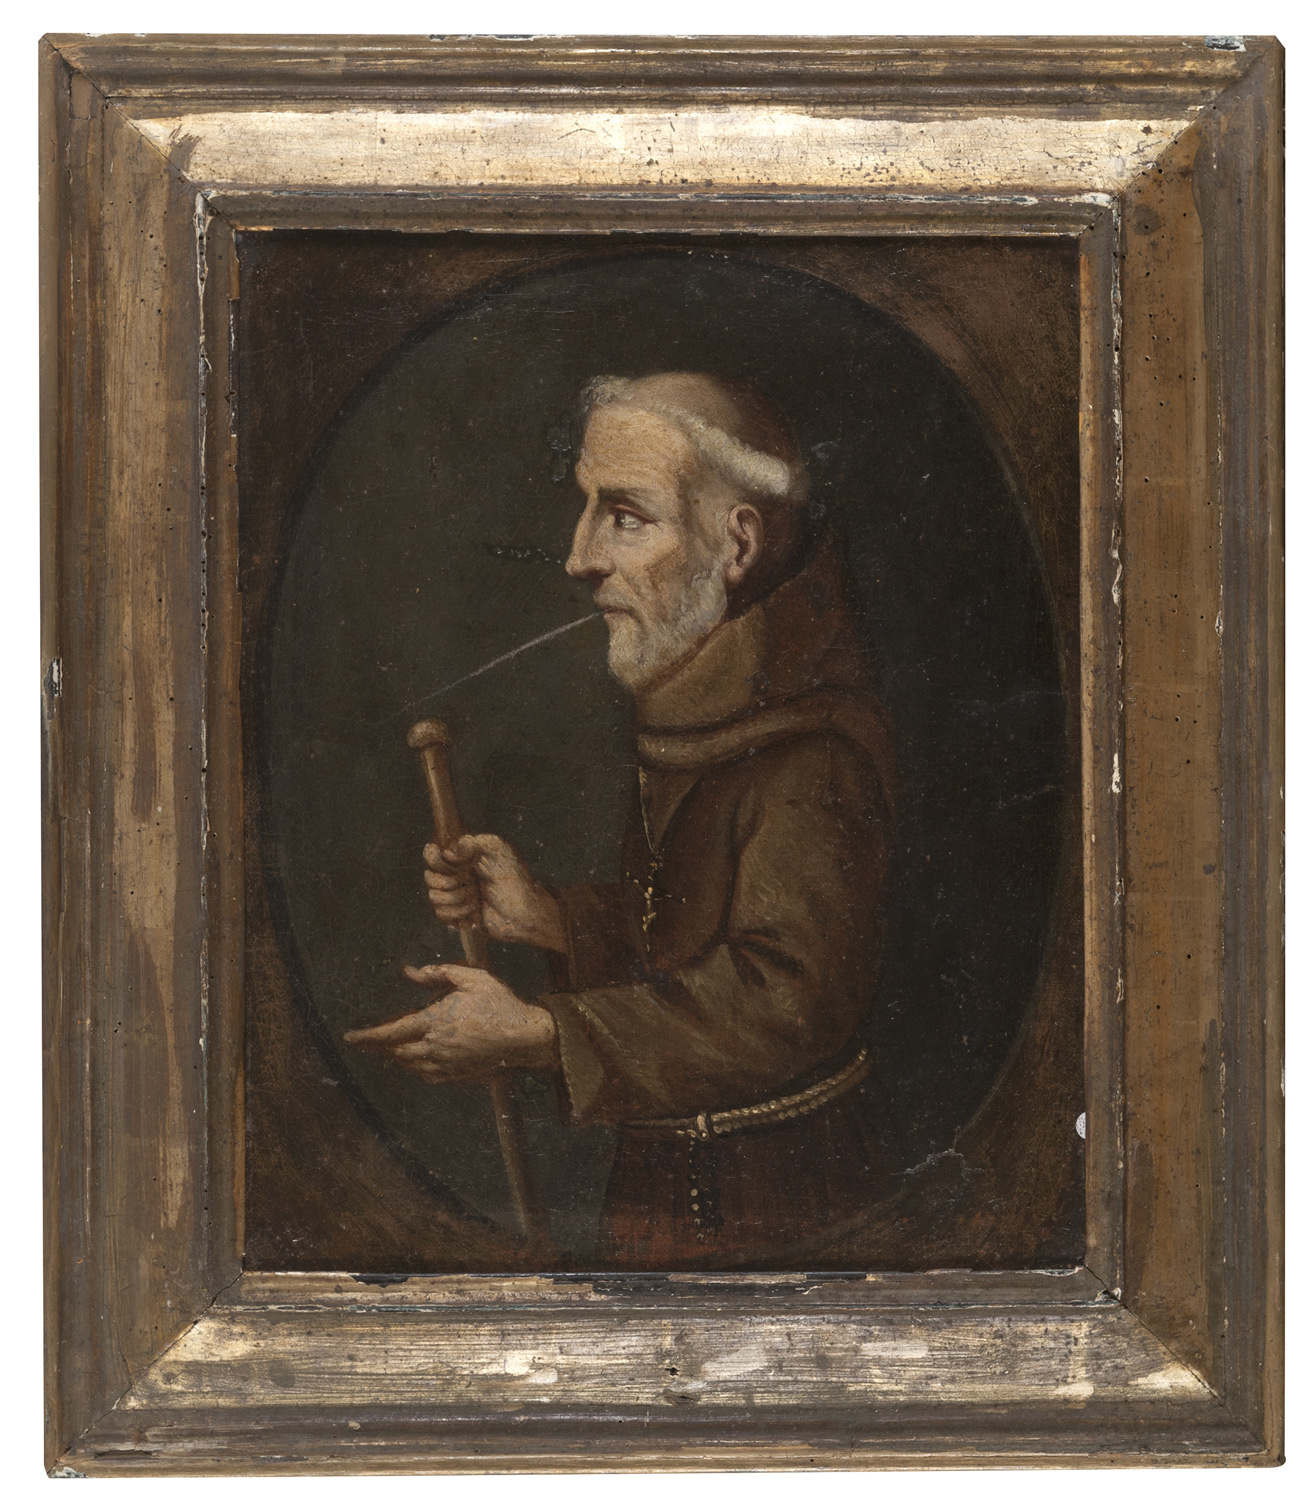 LOMBARD OIL PAINTING 18th CENTURY